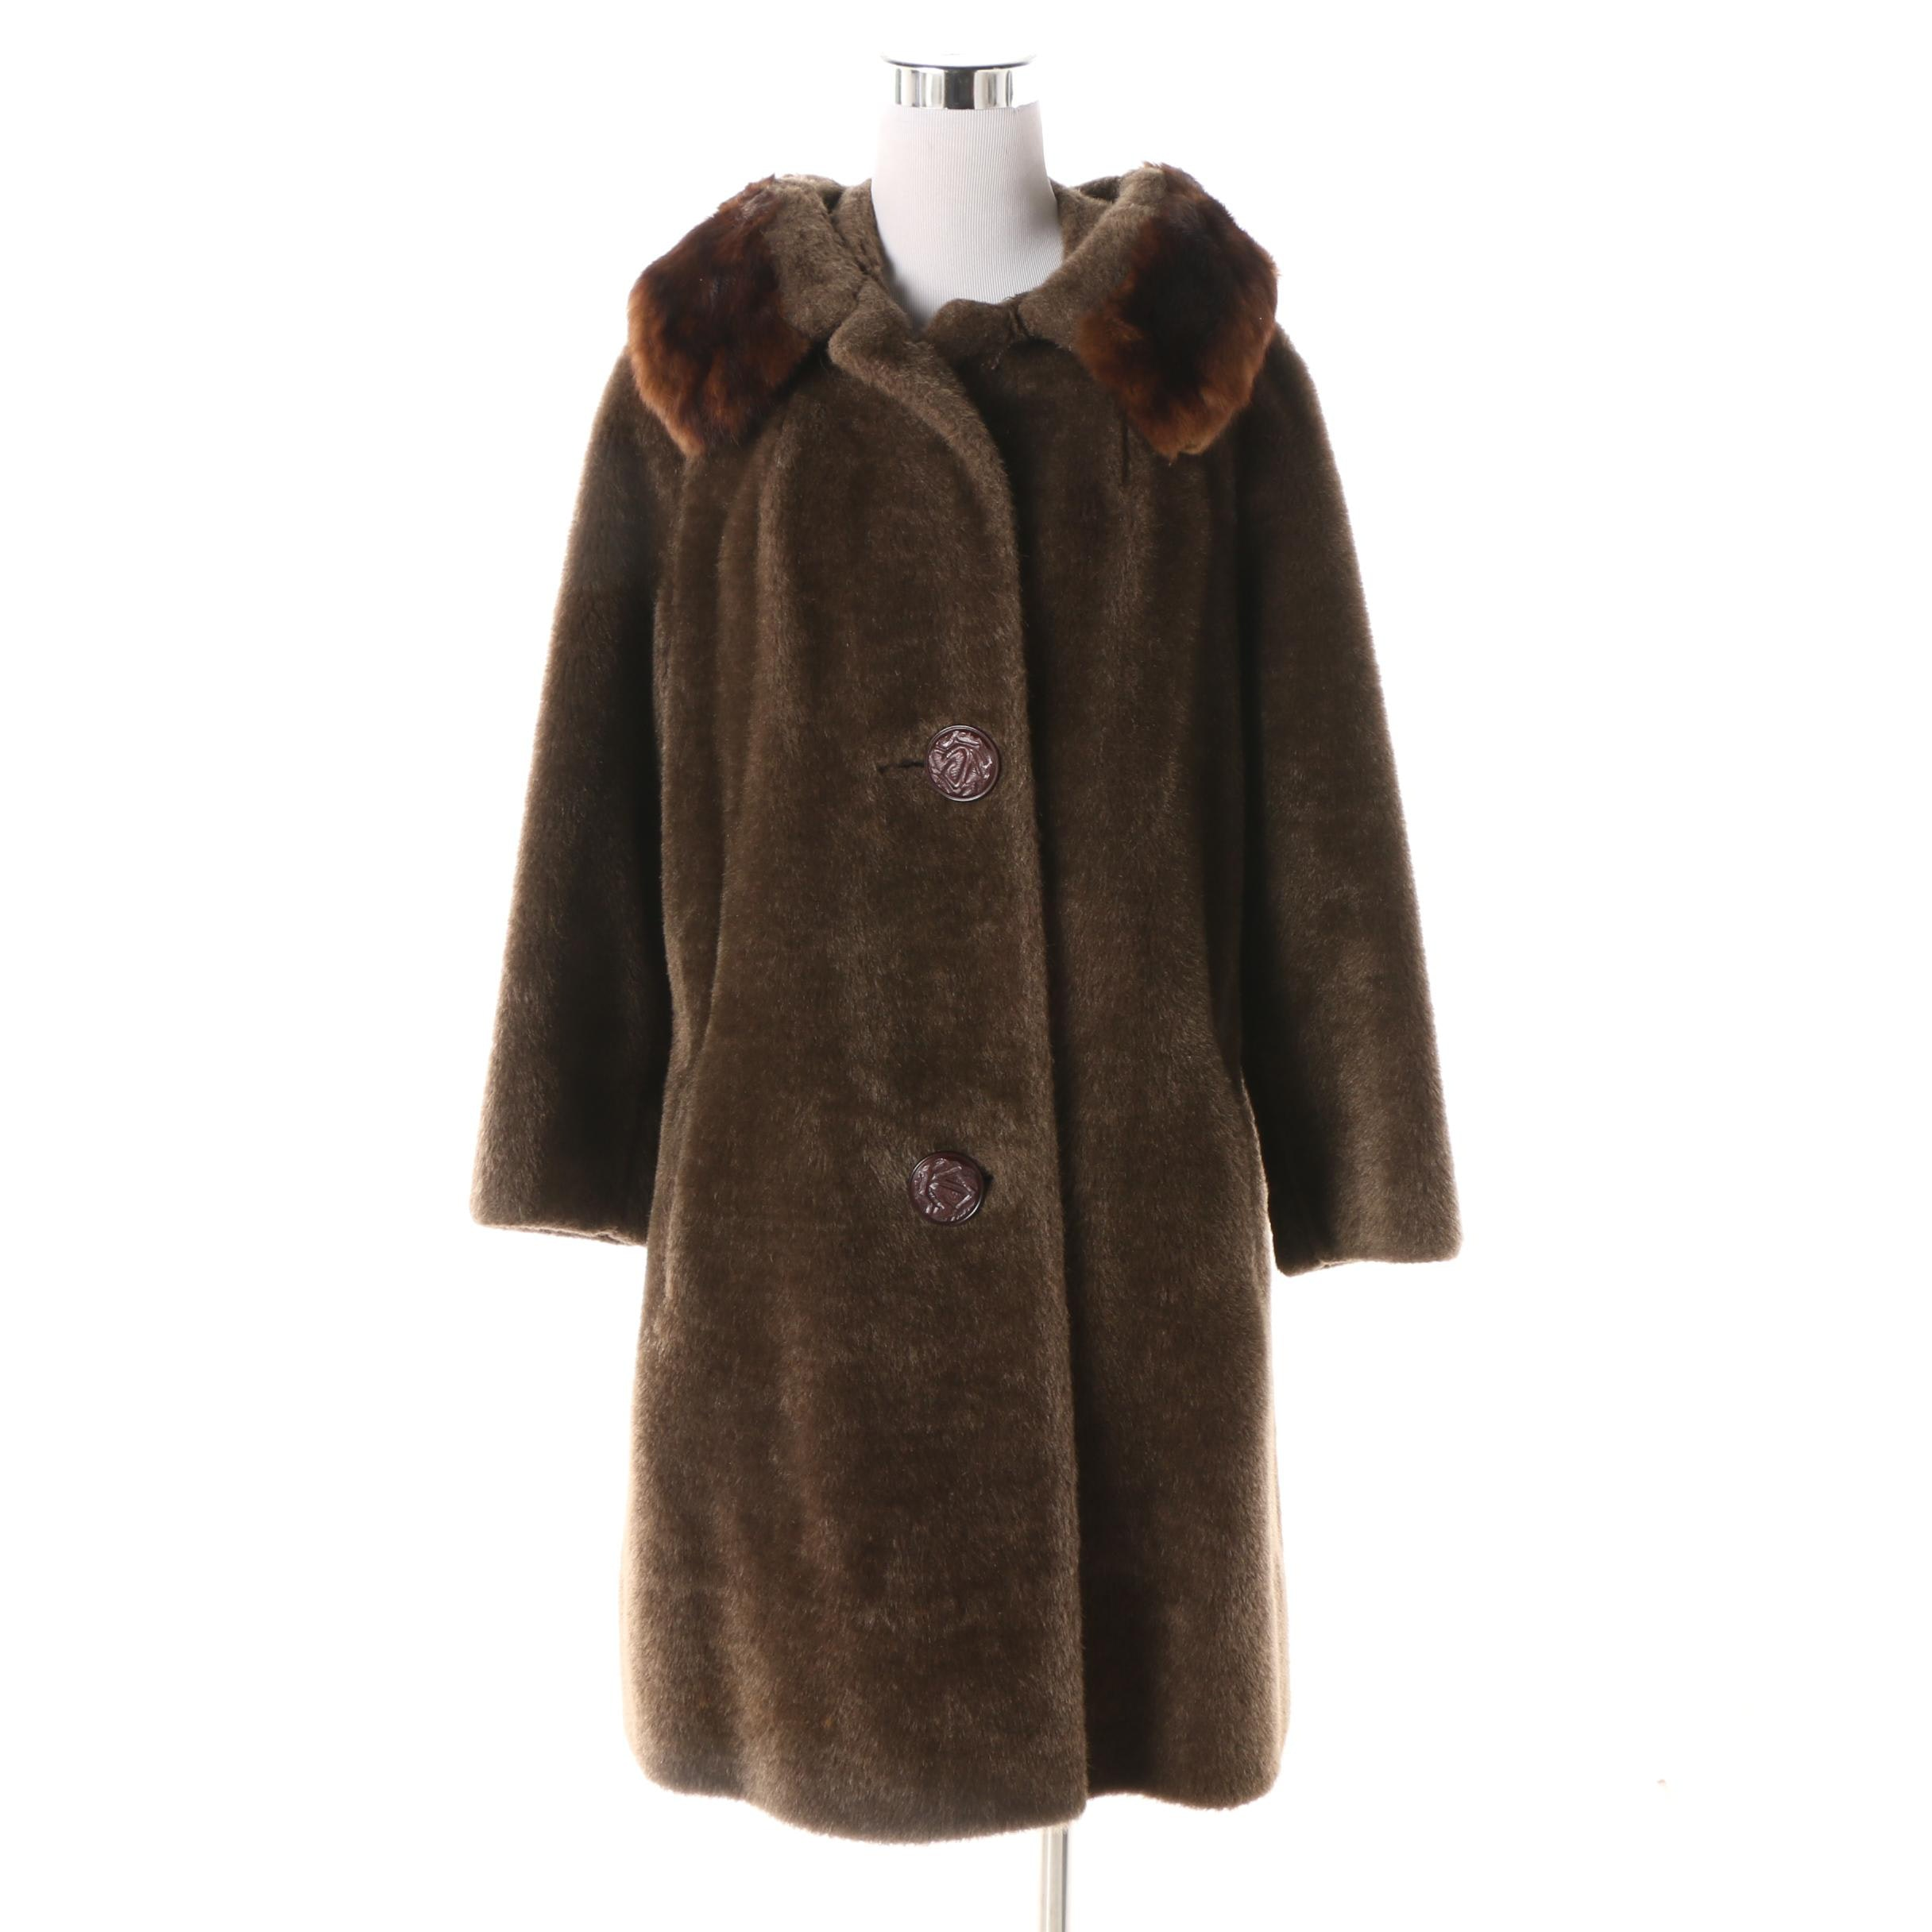 1960s Vintage Gracie Park Faux Fur Coat with Dyed Marten Fur Collar